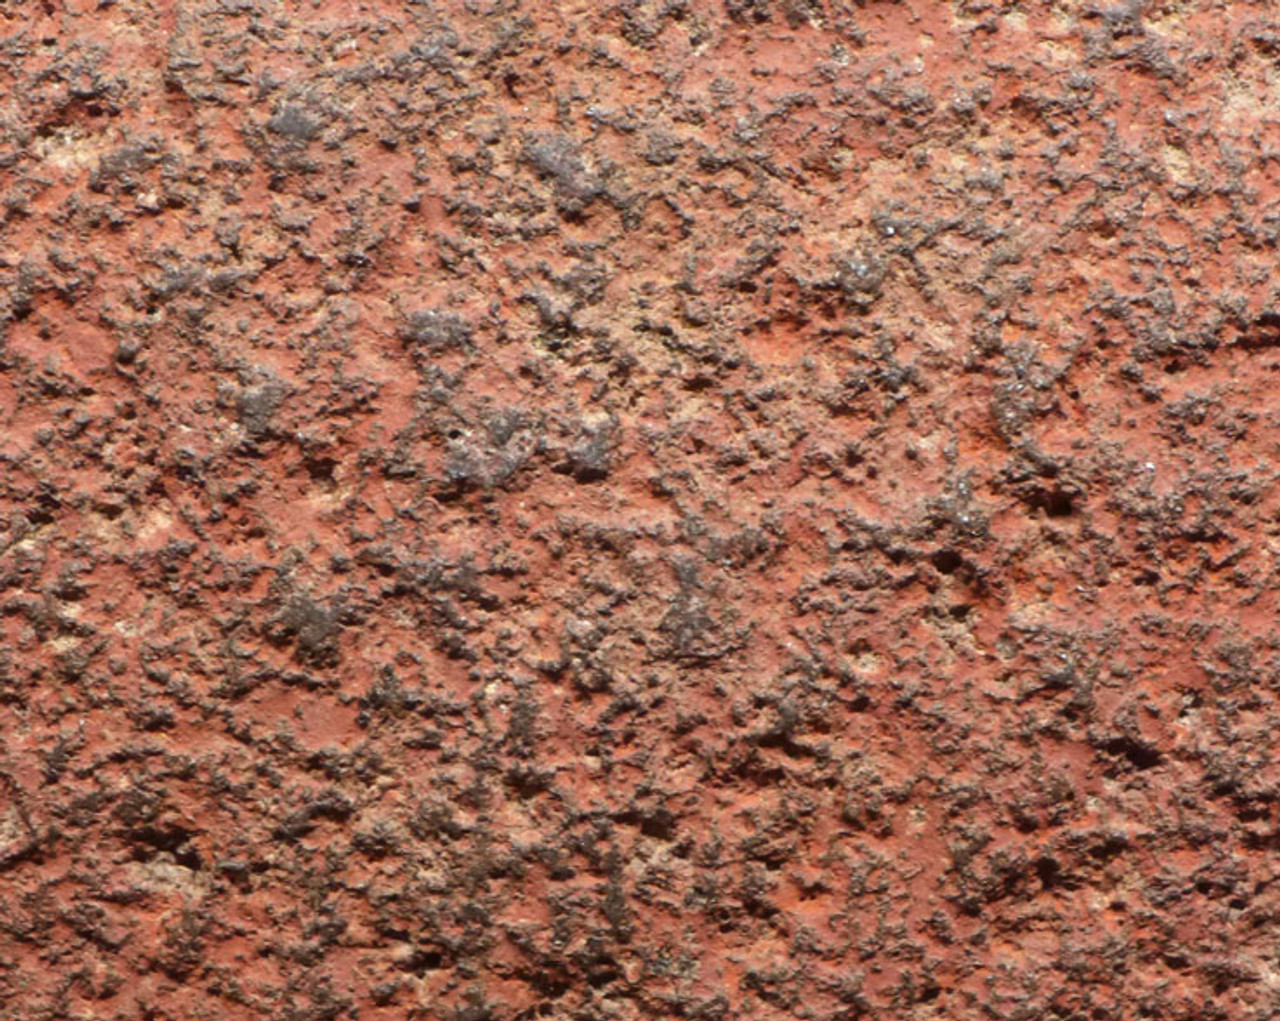 HEAVY RED PIGMENT IS THE ANCIENT ORIGINAL RED OCHRE PIGMENT FROM WHEN THIS LARGE GRINDER WAS USED.